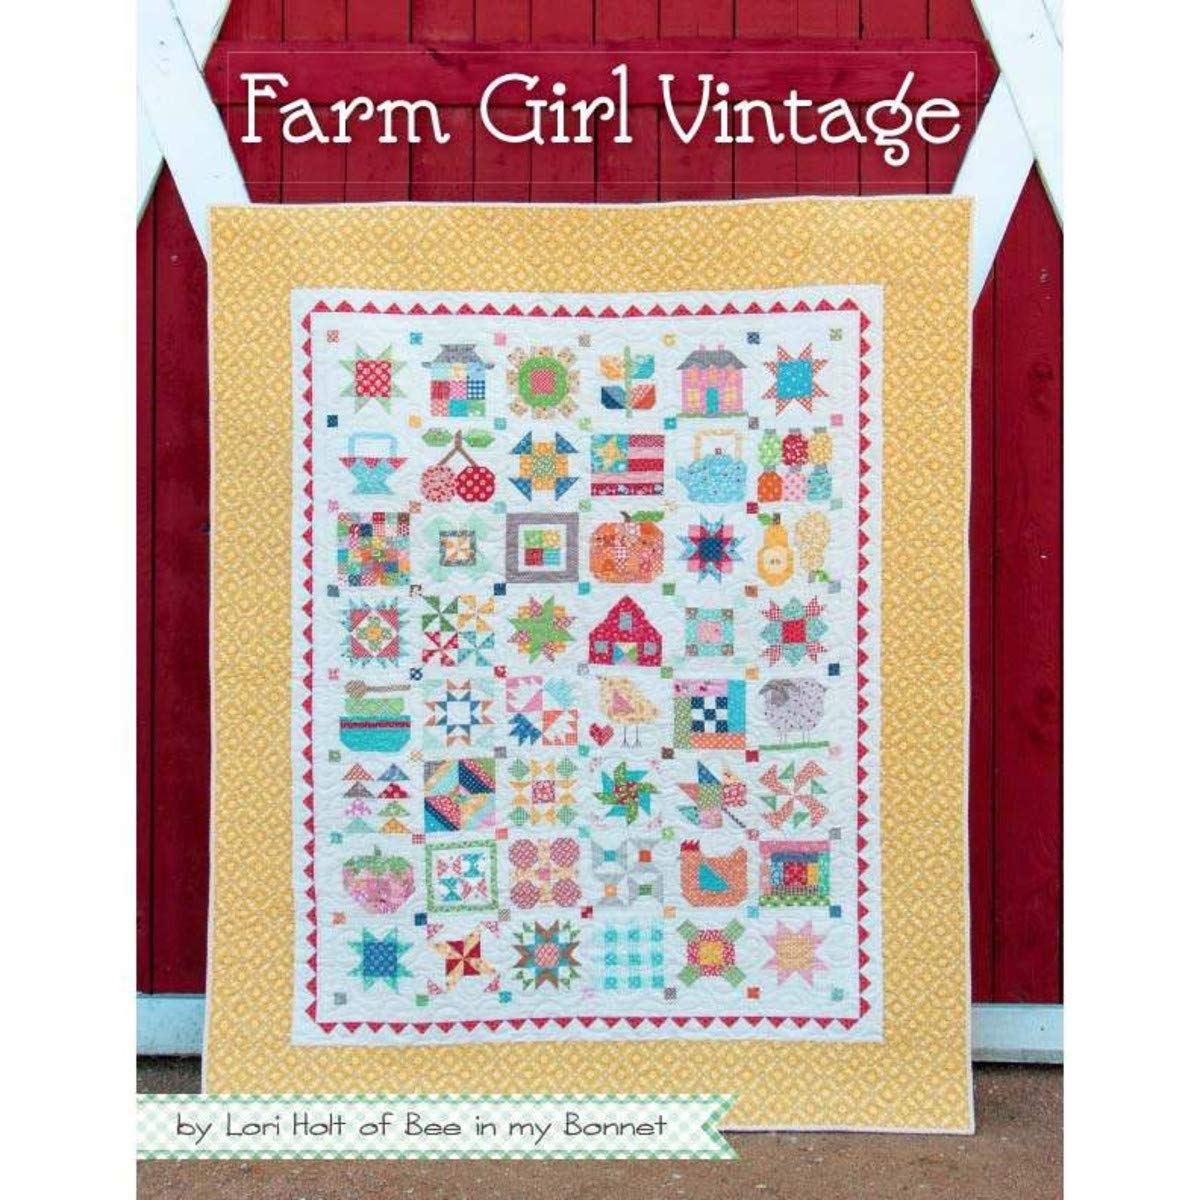 5 Sewing/Quilting Books by Lori Holt: Farm Girl Vintage 2 + Farm Girl Vintage + Quilty Fun + Vintage Christmas + Spelling Bee by Lori Holt